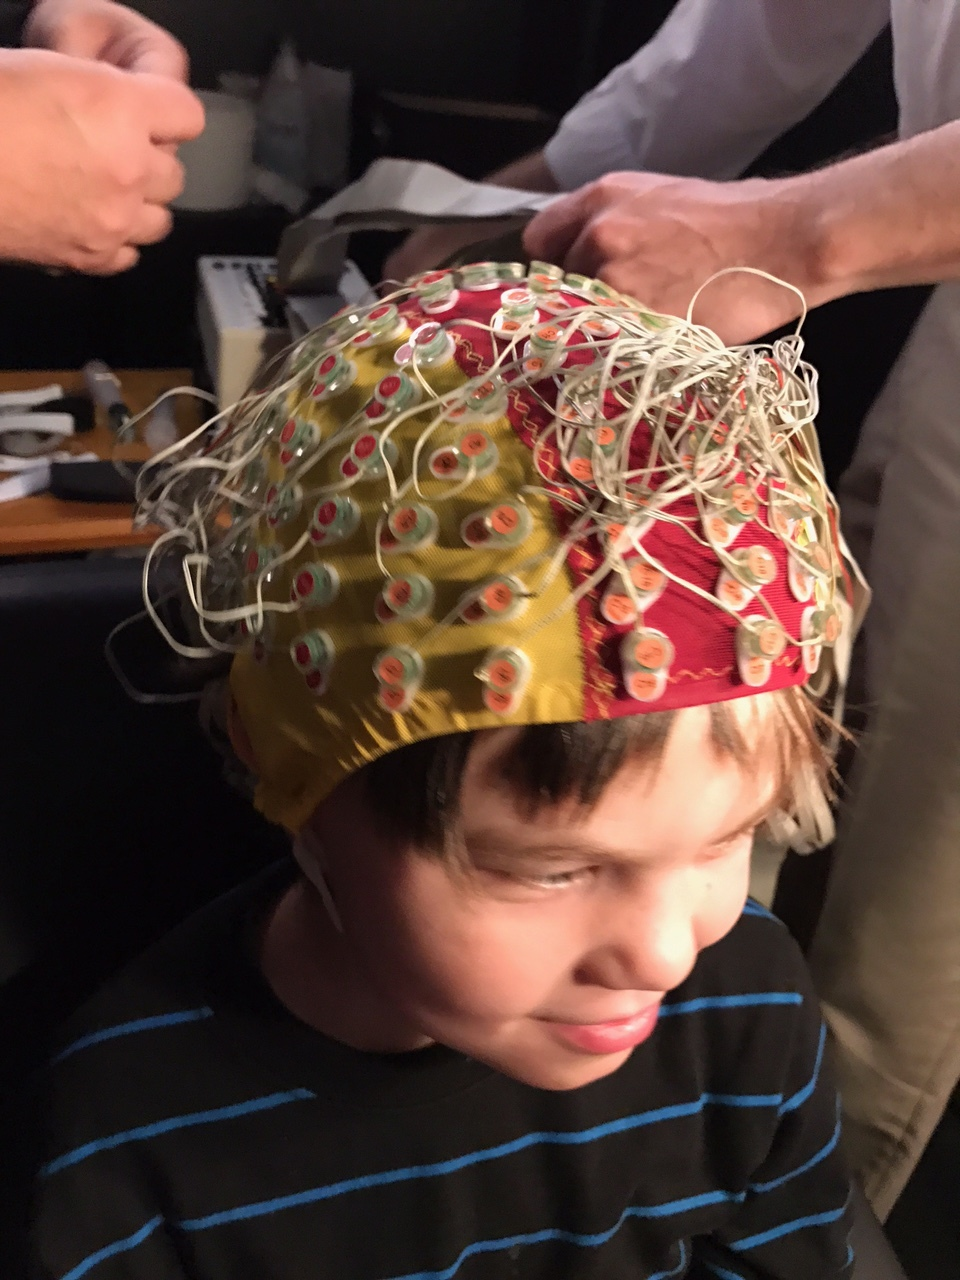 Specialized EEG with over 100 leads!